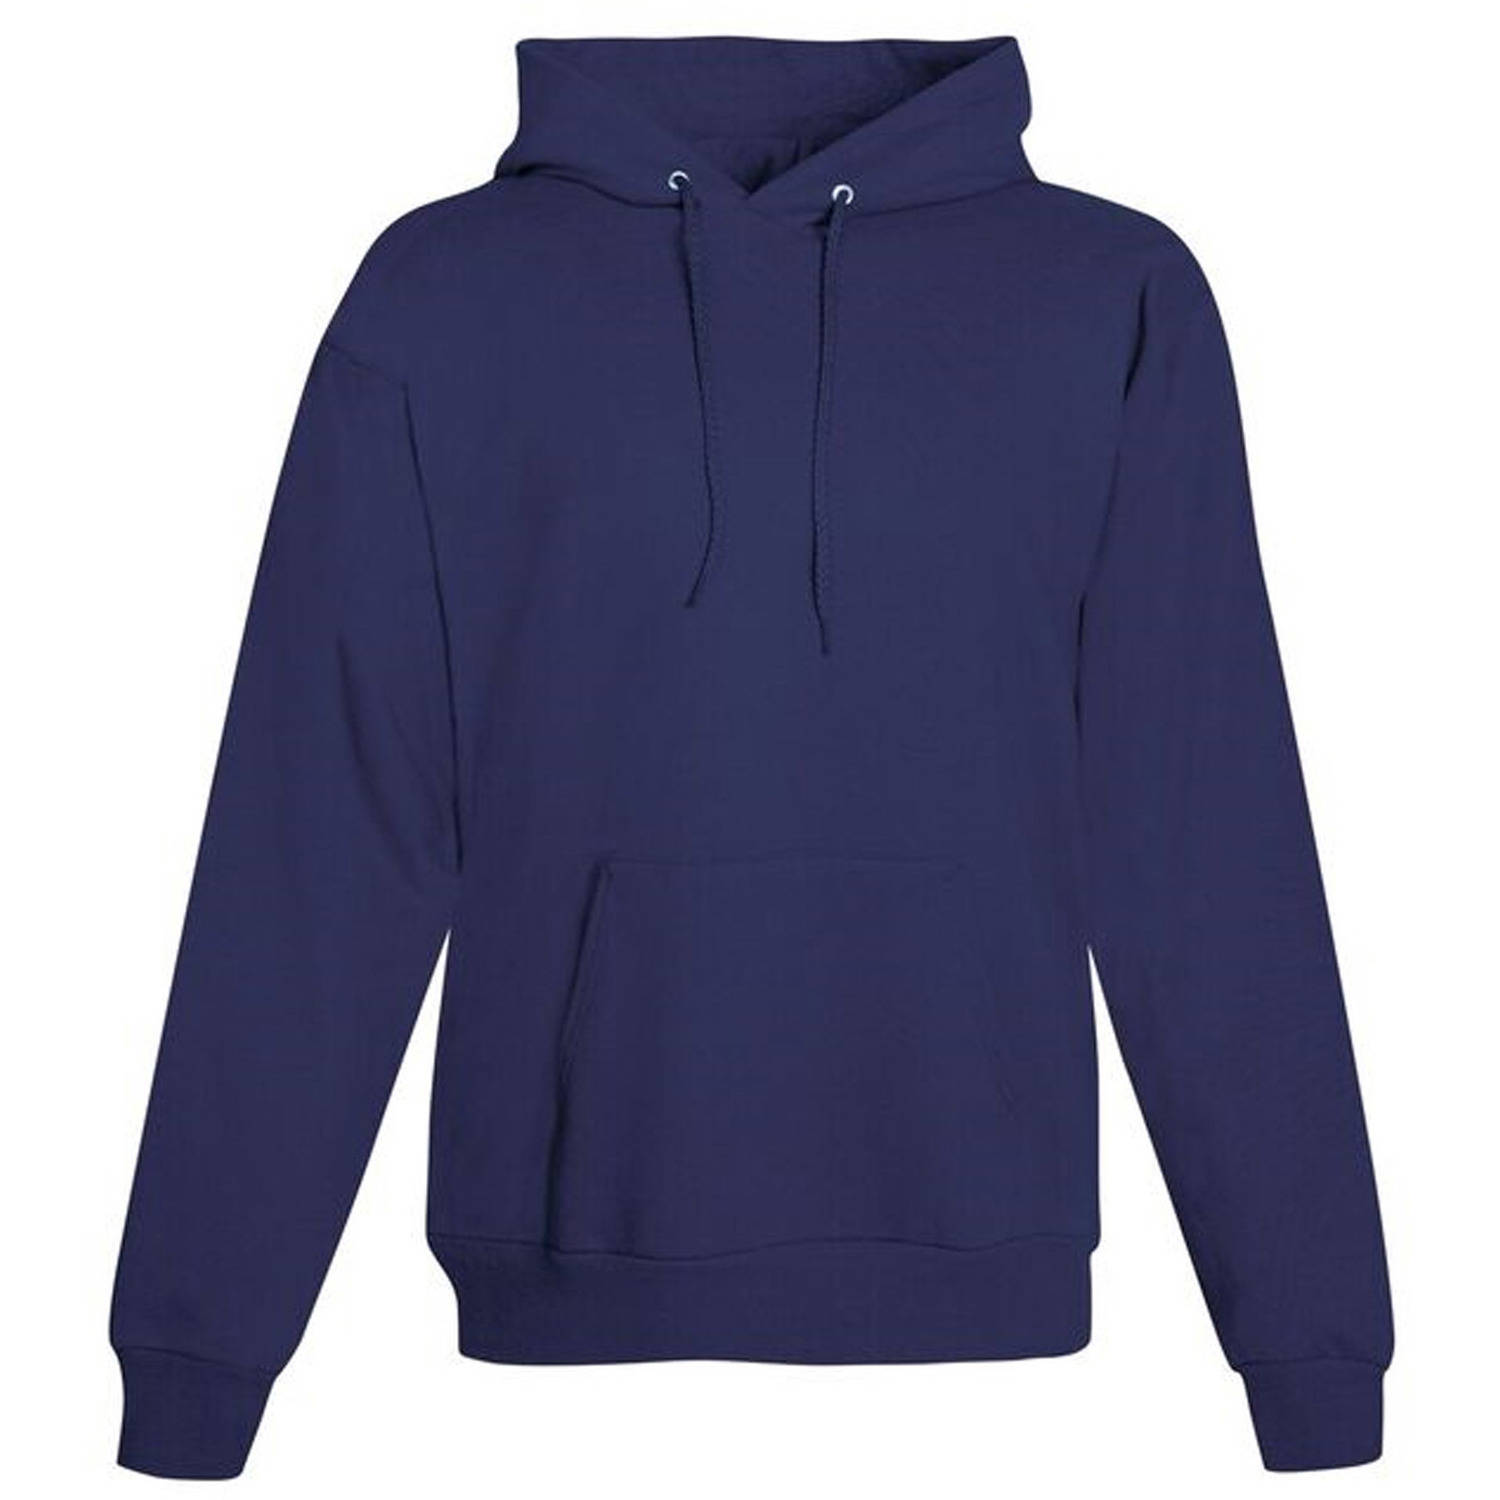 plain royal blue hoodie the hippest. Black Bedroom Furniture Sets. Home Design Ideas